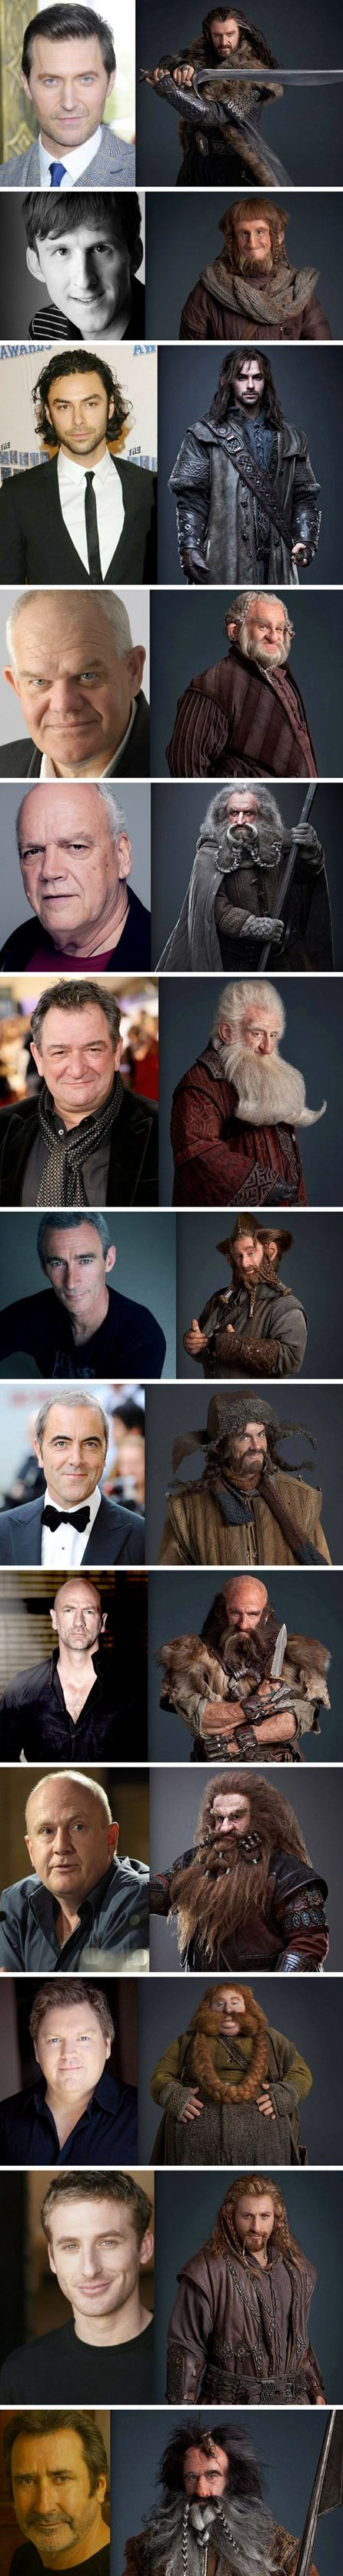 The Hobbit dwarves – pre and post make up